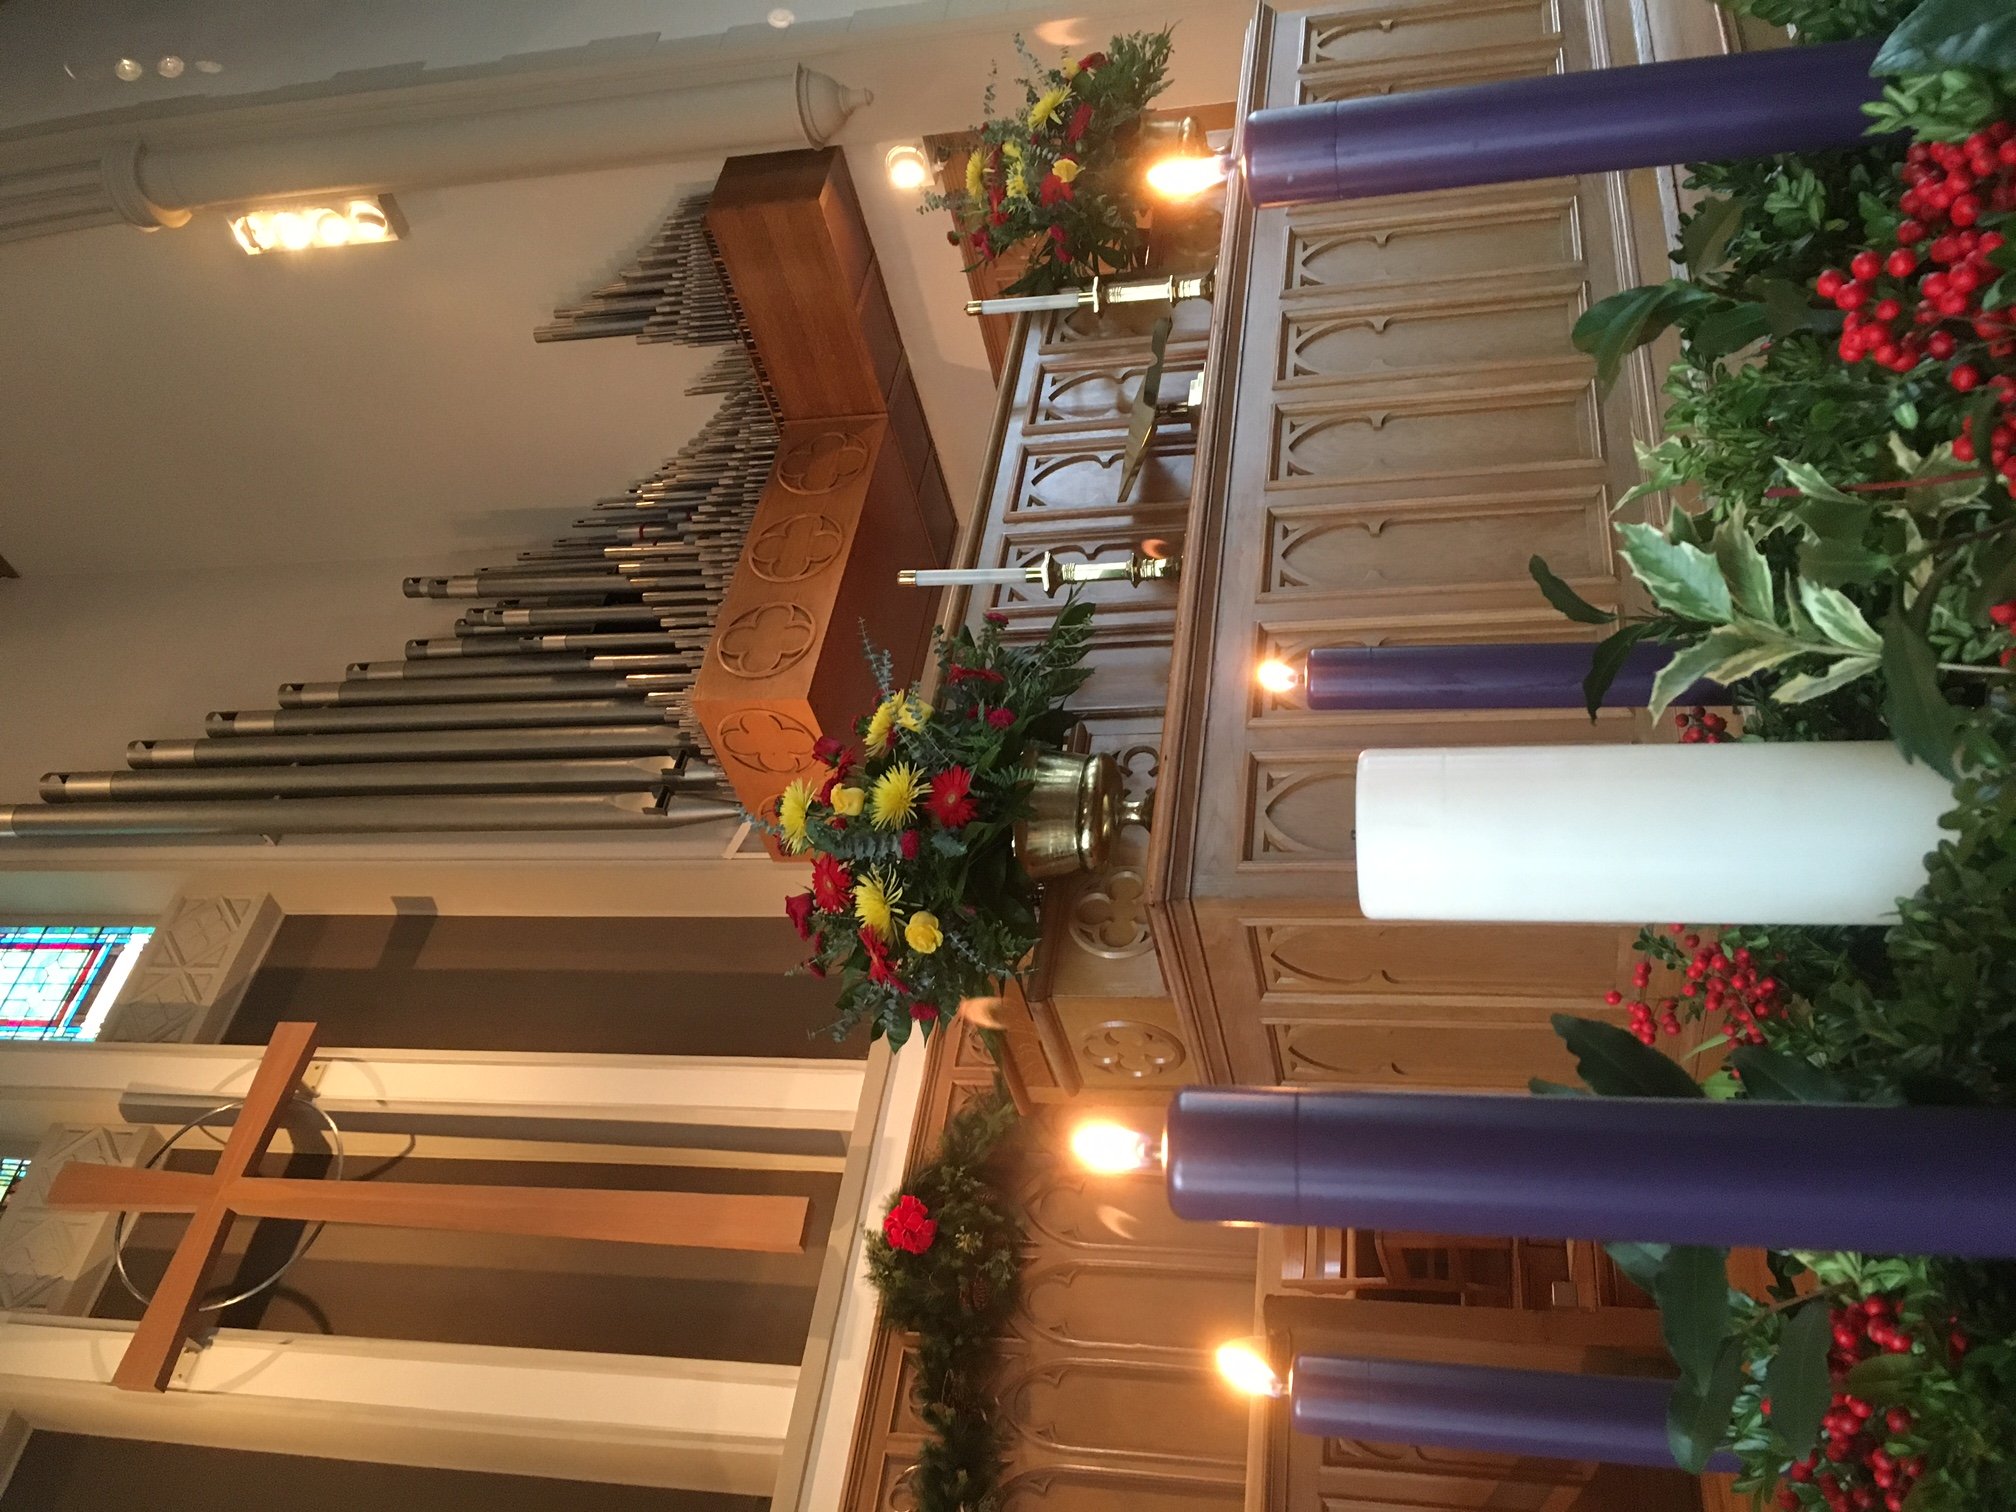 Church decorations for january - Help Take Down The Lovely Decorations We Have Enjoyed This Christmas Season Meet At 9 00a On Saturday January 7 In The Sanctuary